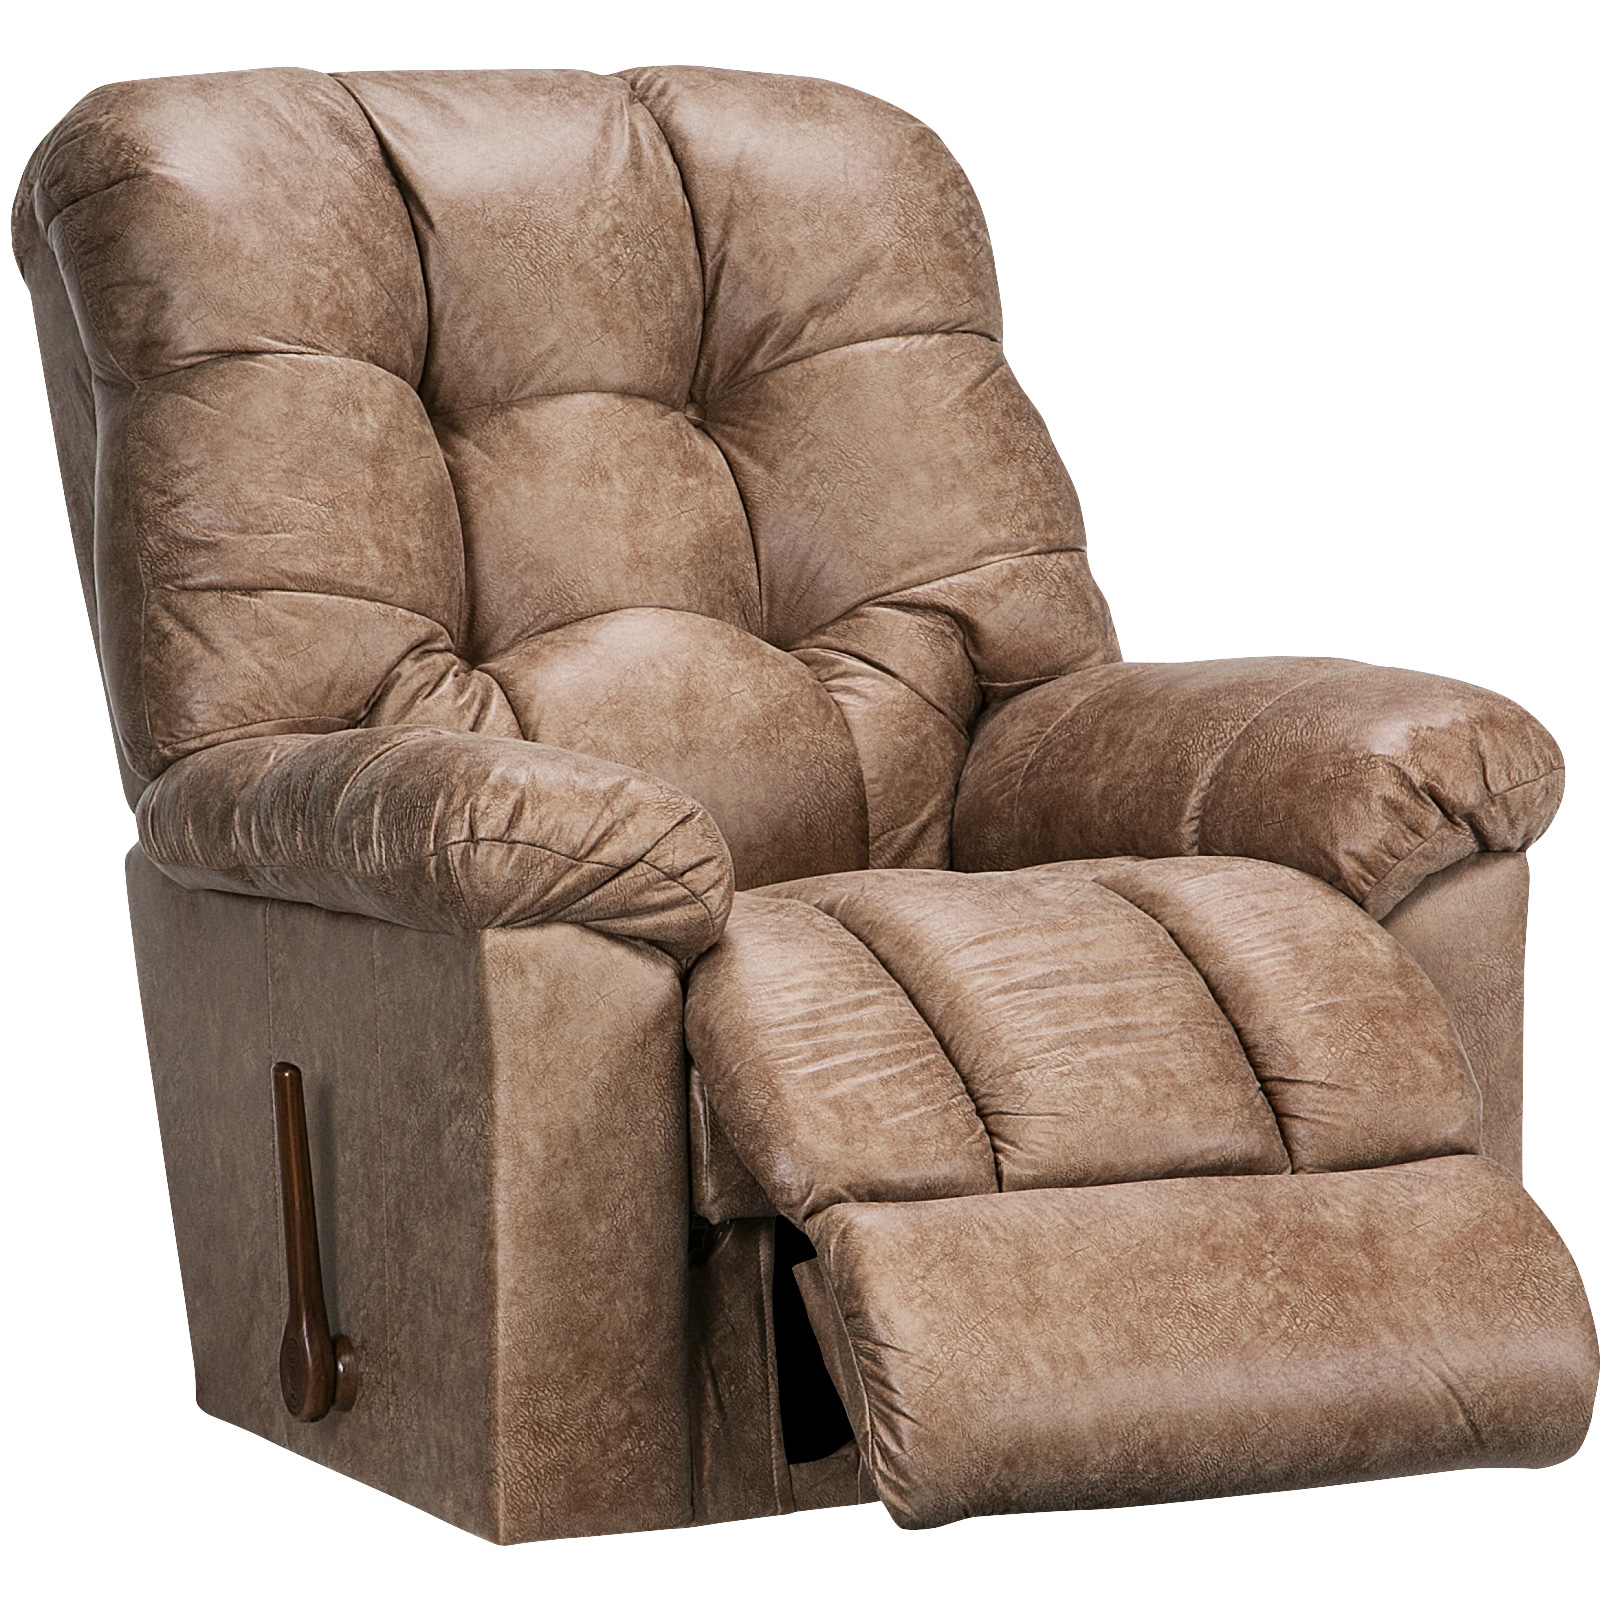 La-Z-Boy | Gibson Fawn Rocker Recliner Chair